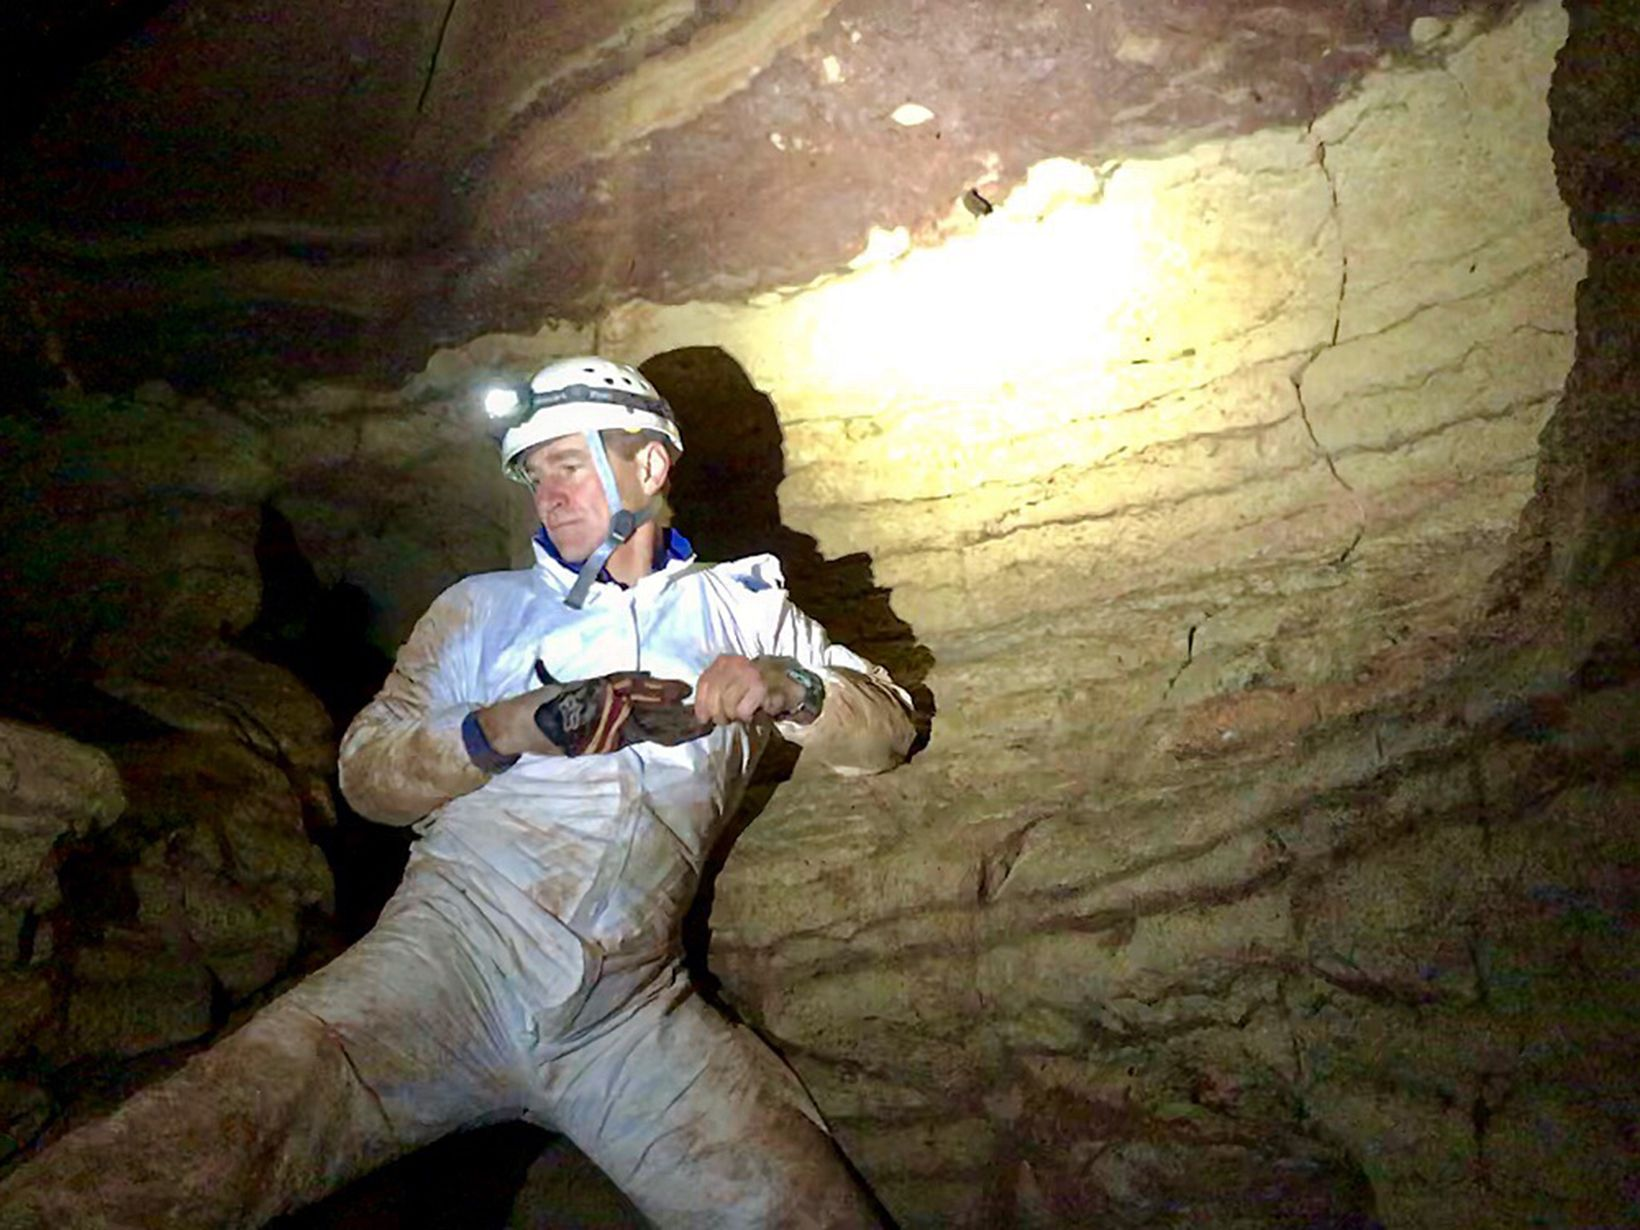 A man in mud covered white coveralls balances against the wall of a cave, preparing to take a sample from the small bat clinging to the wall.